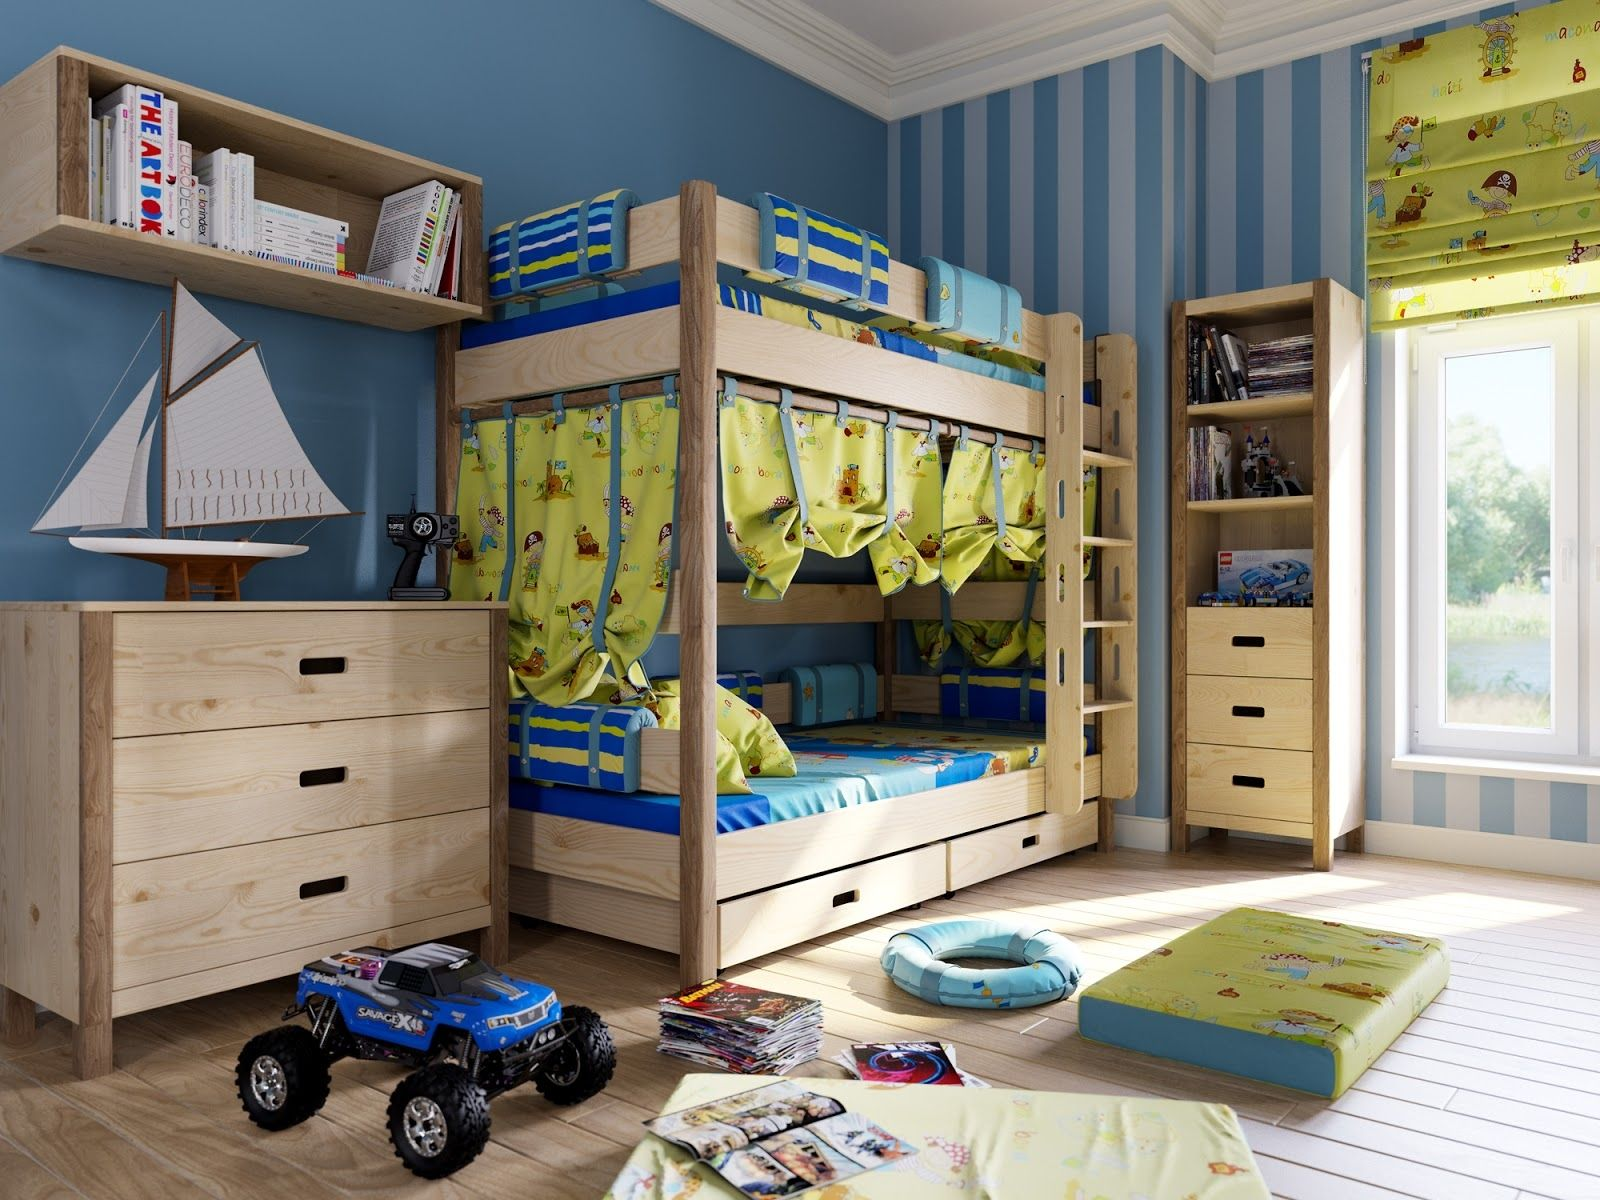 Furniture, Delightful Childrenu0027s Room Themes With Natural Wooden Bunk Bed  Also Wooden Floating Book Case And Wooden Chest Of Drawers Design Ideas:  Lovely ...